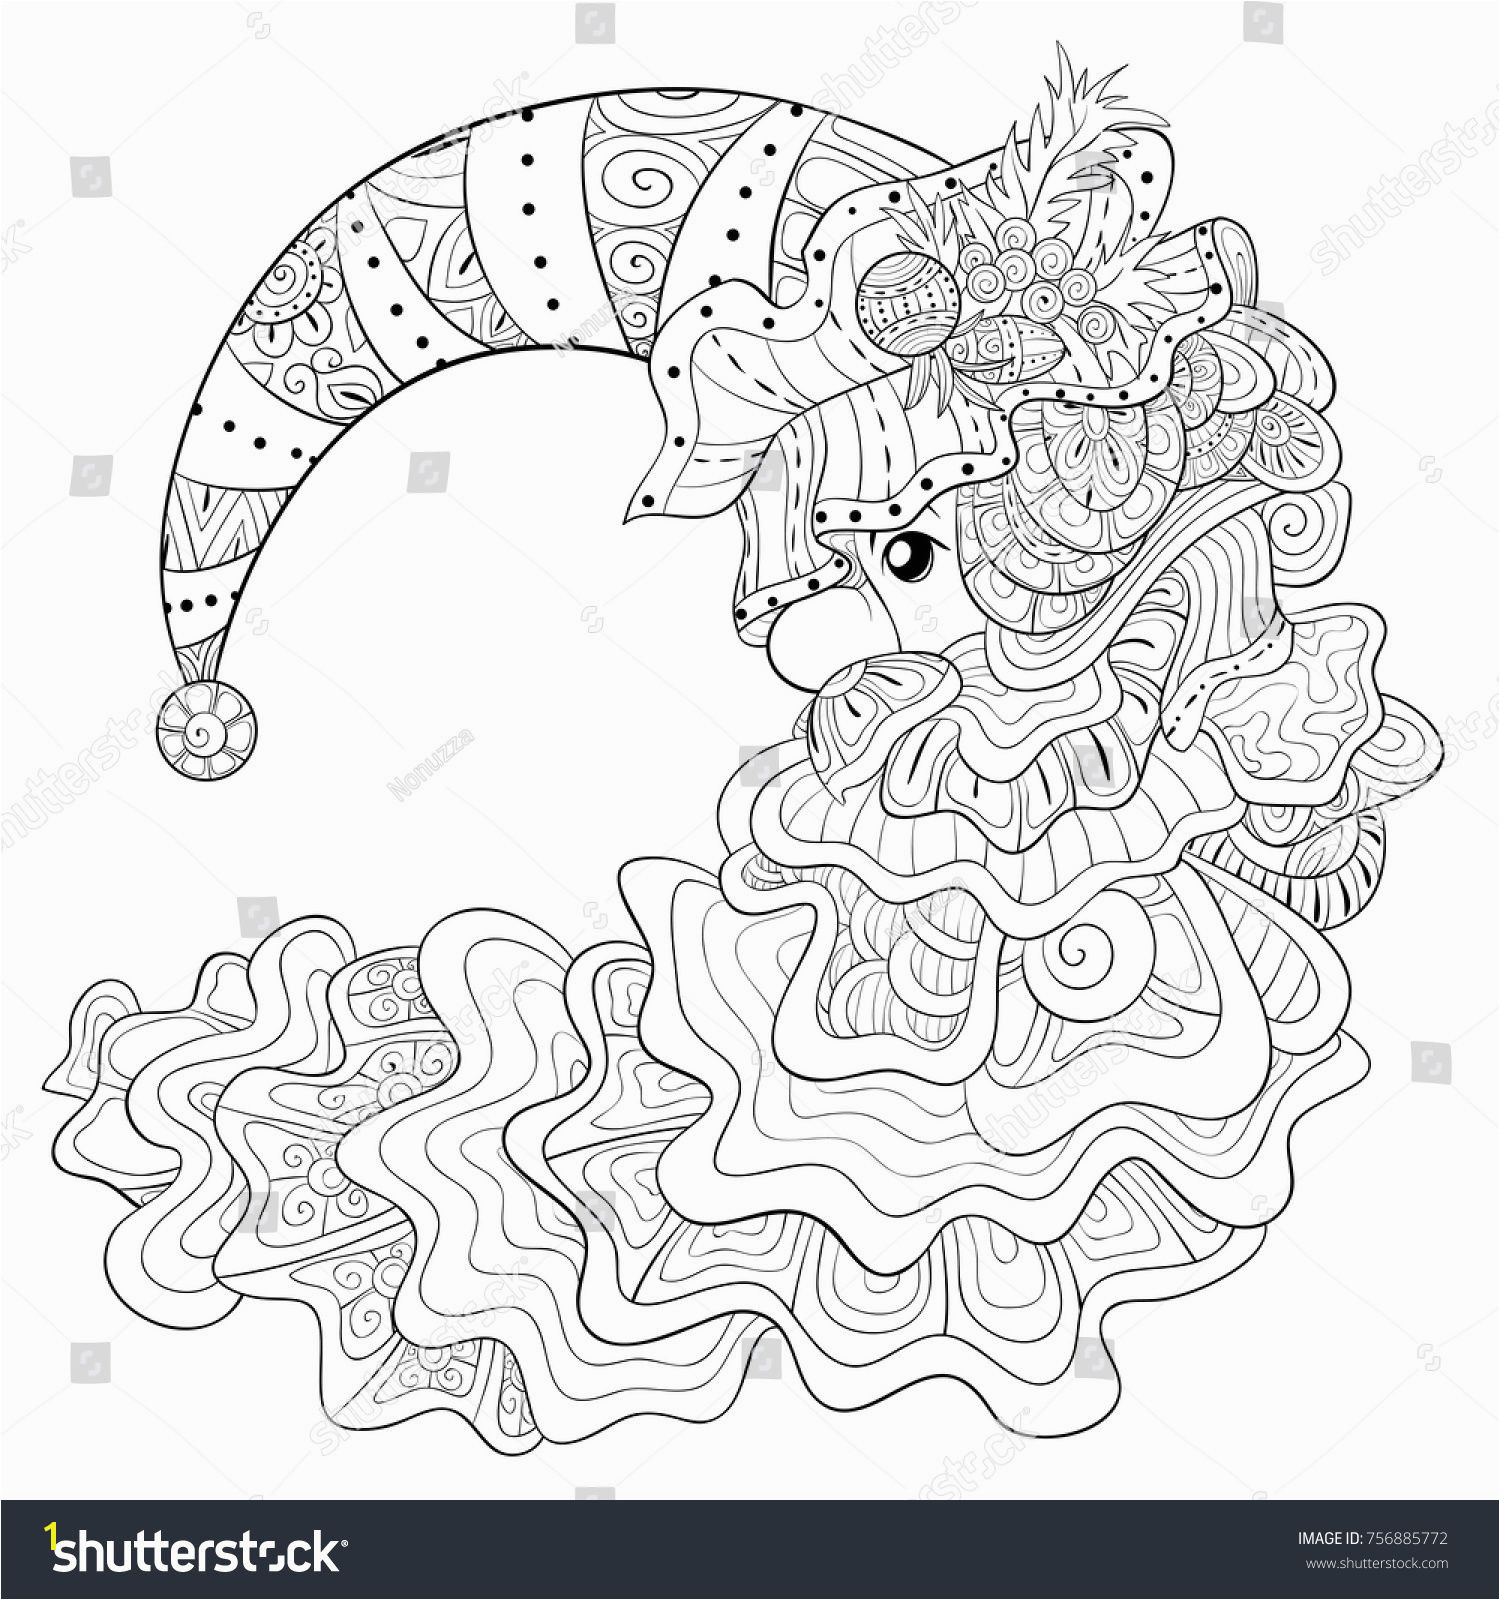 Adult coloring page book a Santa Claus with hat and beard for relaxing Zen art style illustration